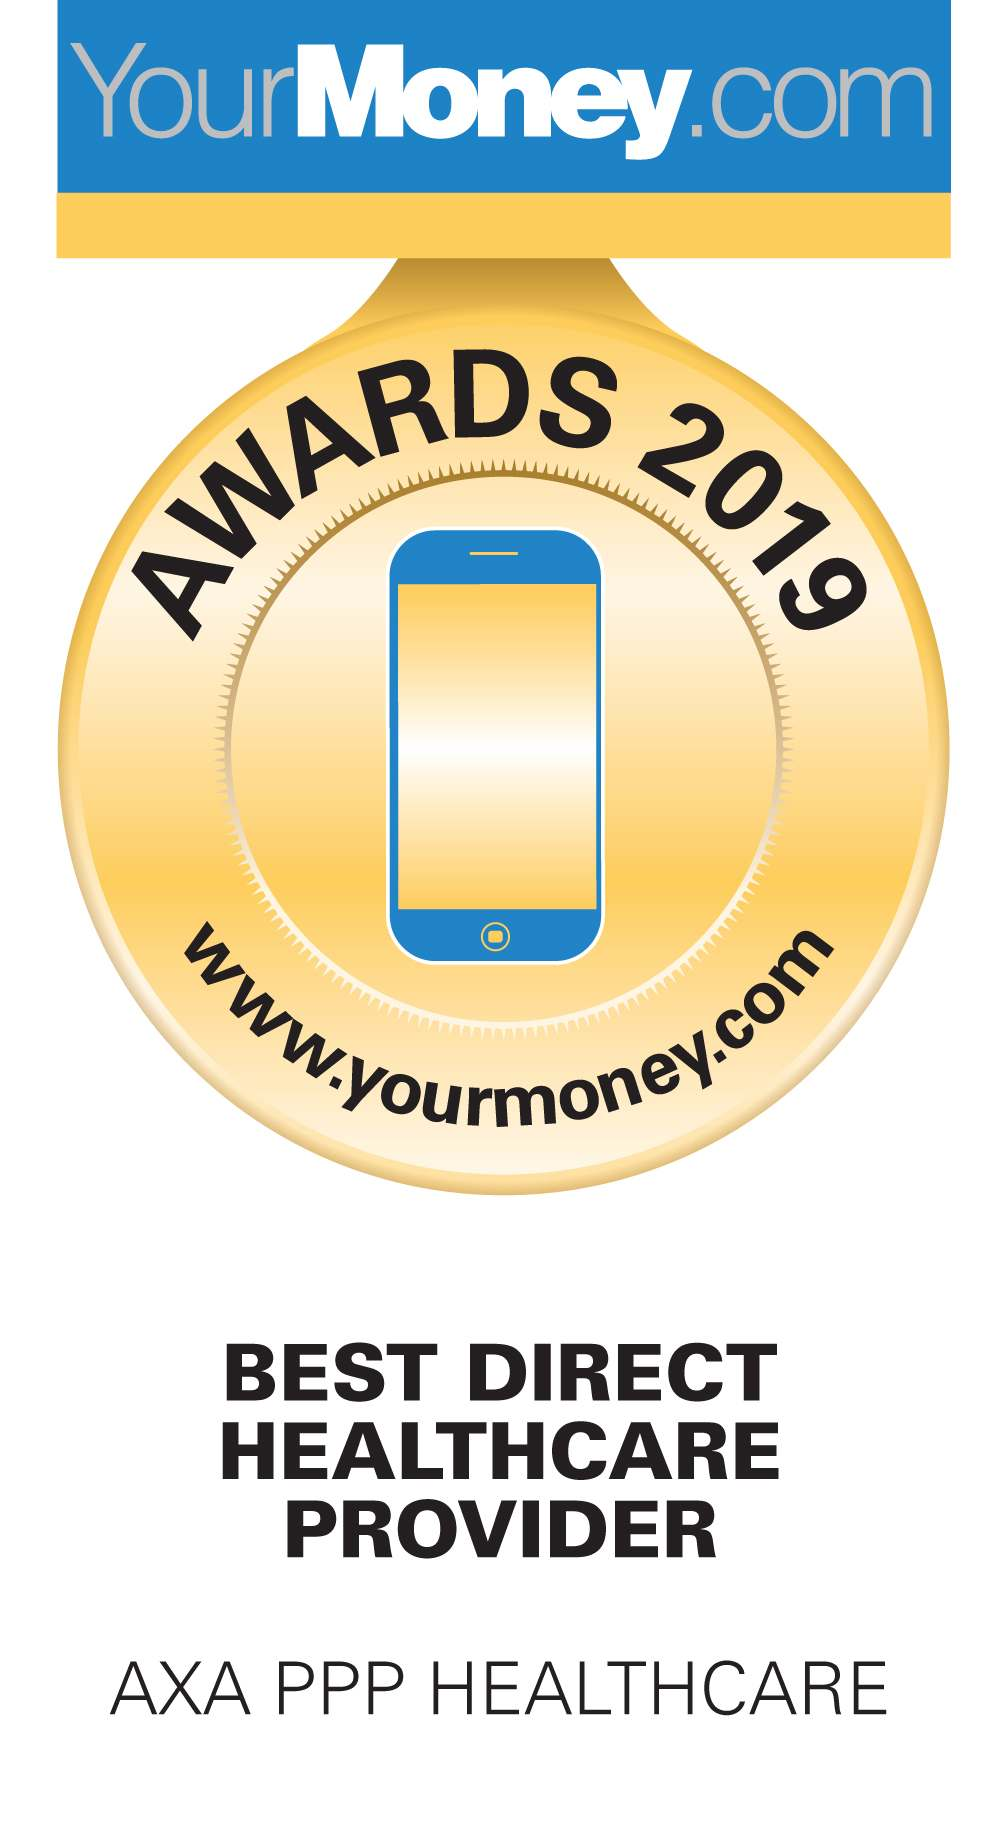 Awarded Best Direct Healthcare Provider for 2019 by YourMoney.com